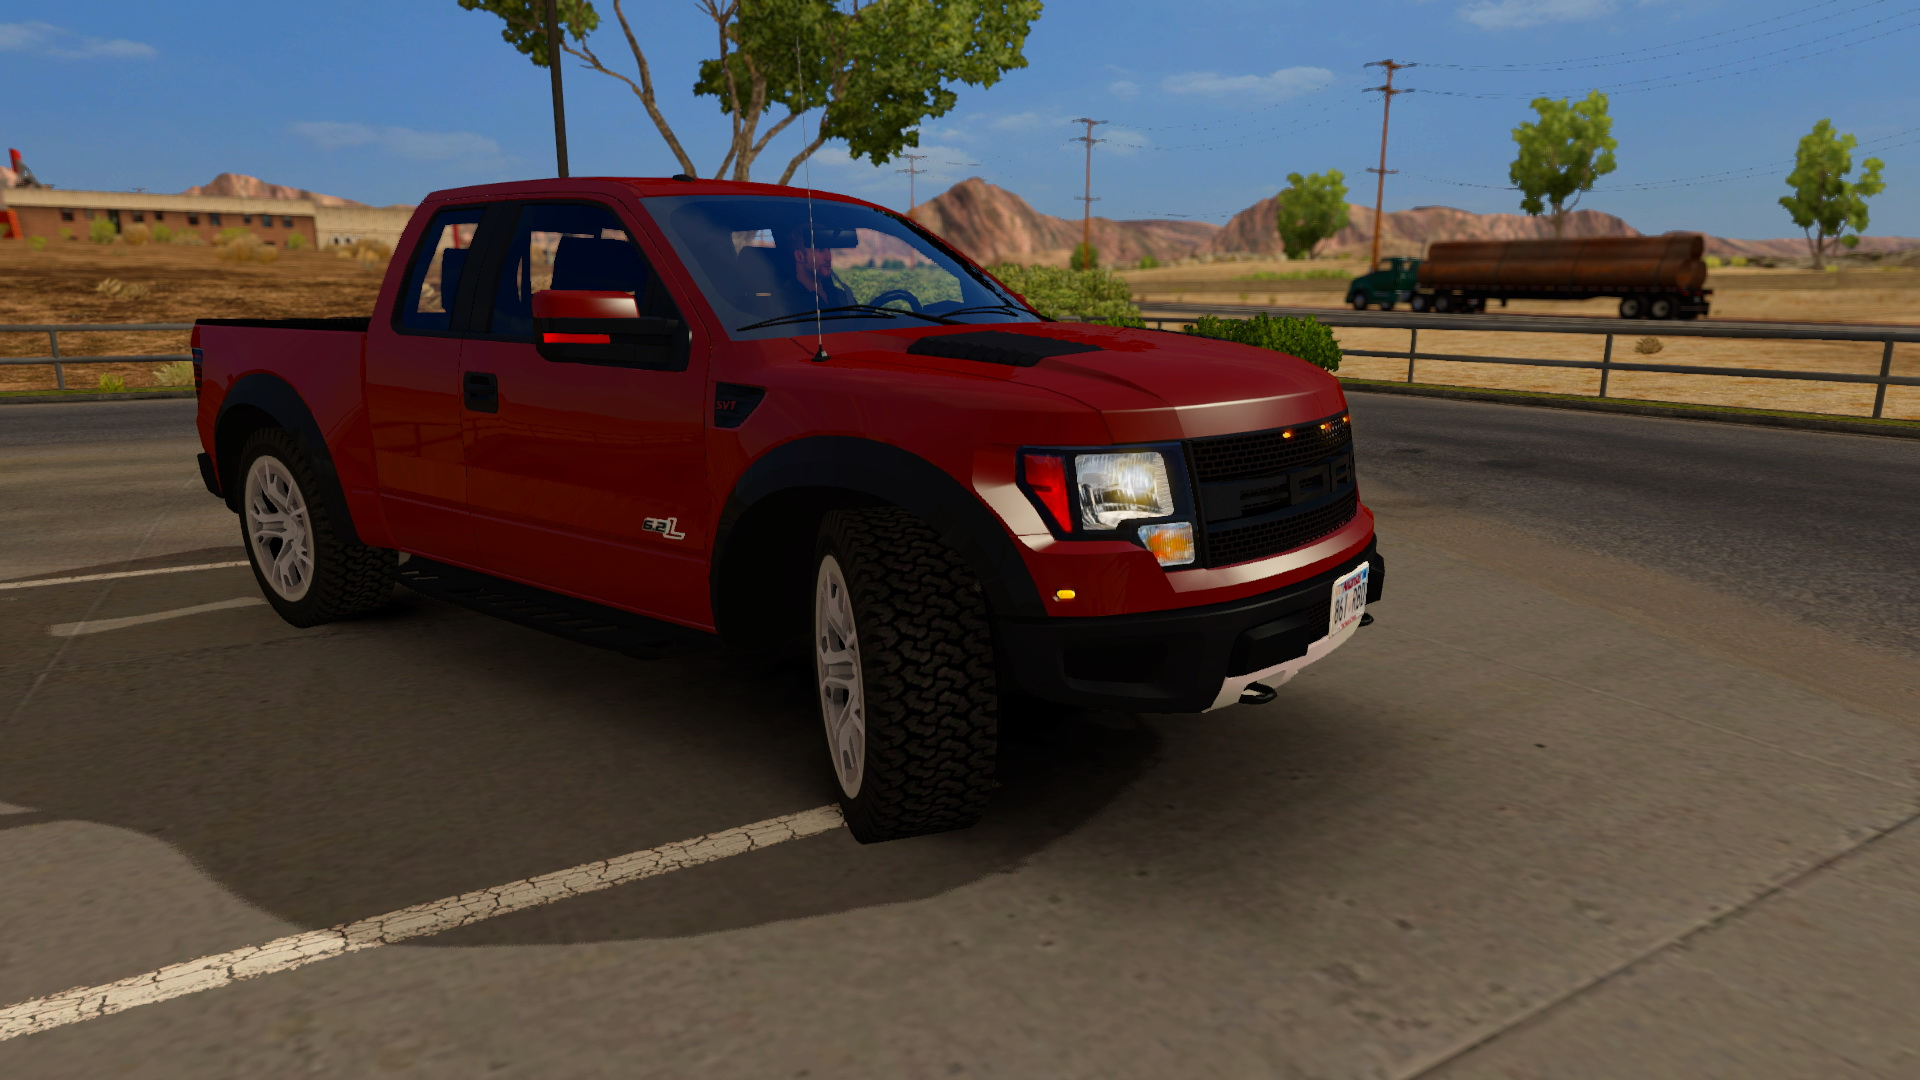 Ford F150 Raptor SVT + Interior (Urban Version) v2.0 for ATS